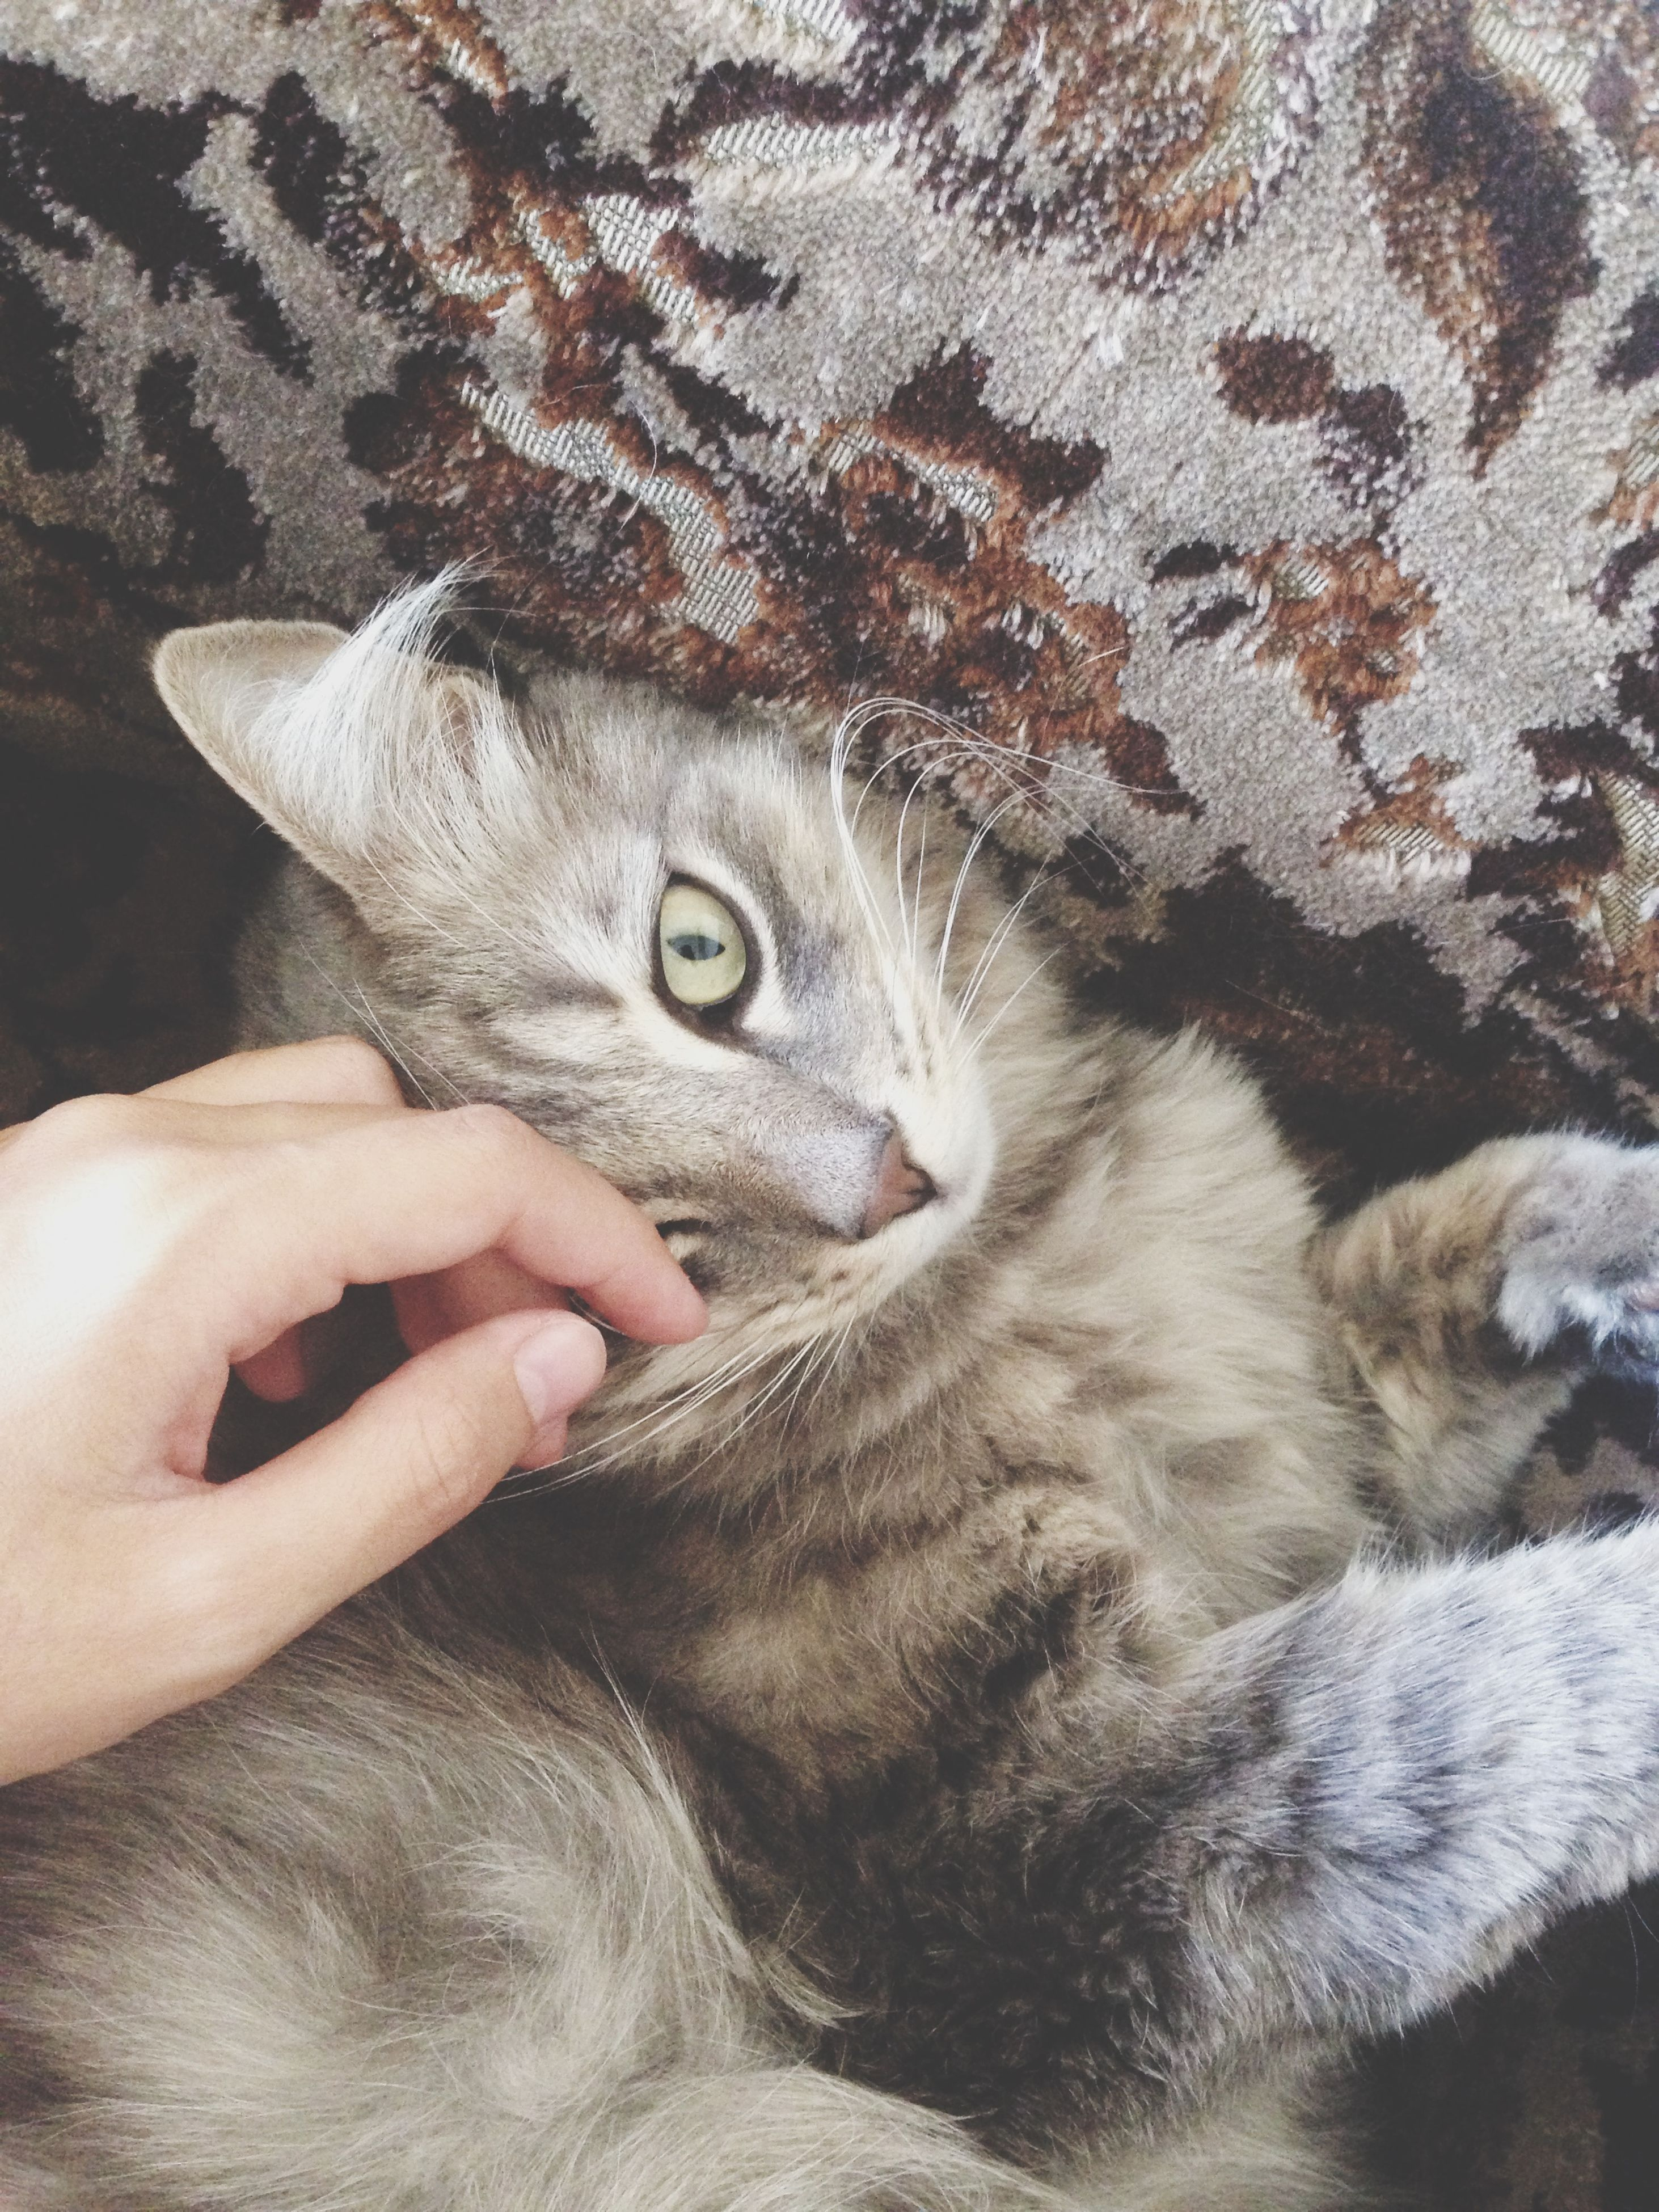 animal themes, one animal, domestic cat, person, pets, mammal, cat, domestic animals, part of, feline, whisker, cropped, unrecognizable person, holding, human finger, close-up, animal head